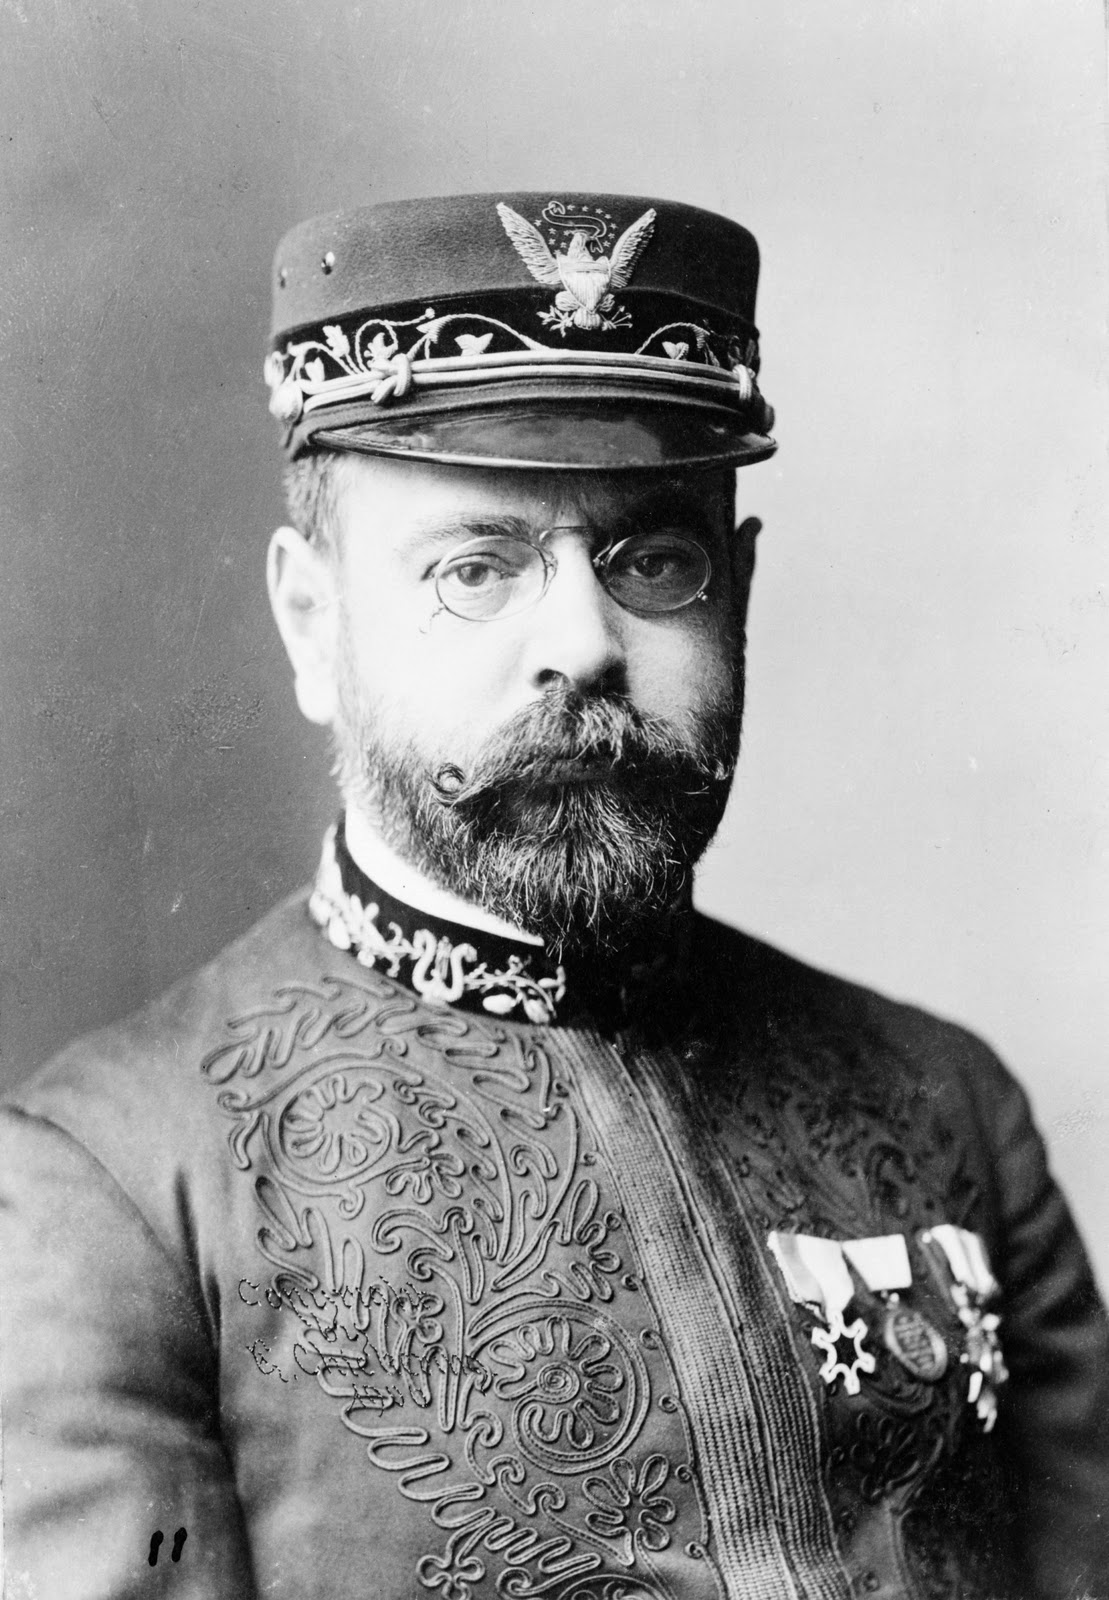 life and contribution of john philip sousa as a composer and conductor of the late romantic era John philip sousa (1854 – 1932) was an american composer and conductor of the late romantic era known particularly for american military marches because of his prominence, he is known as the march king.